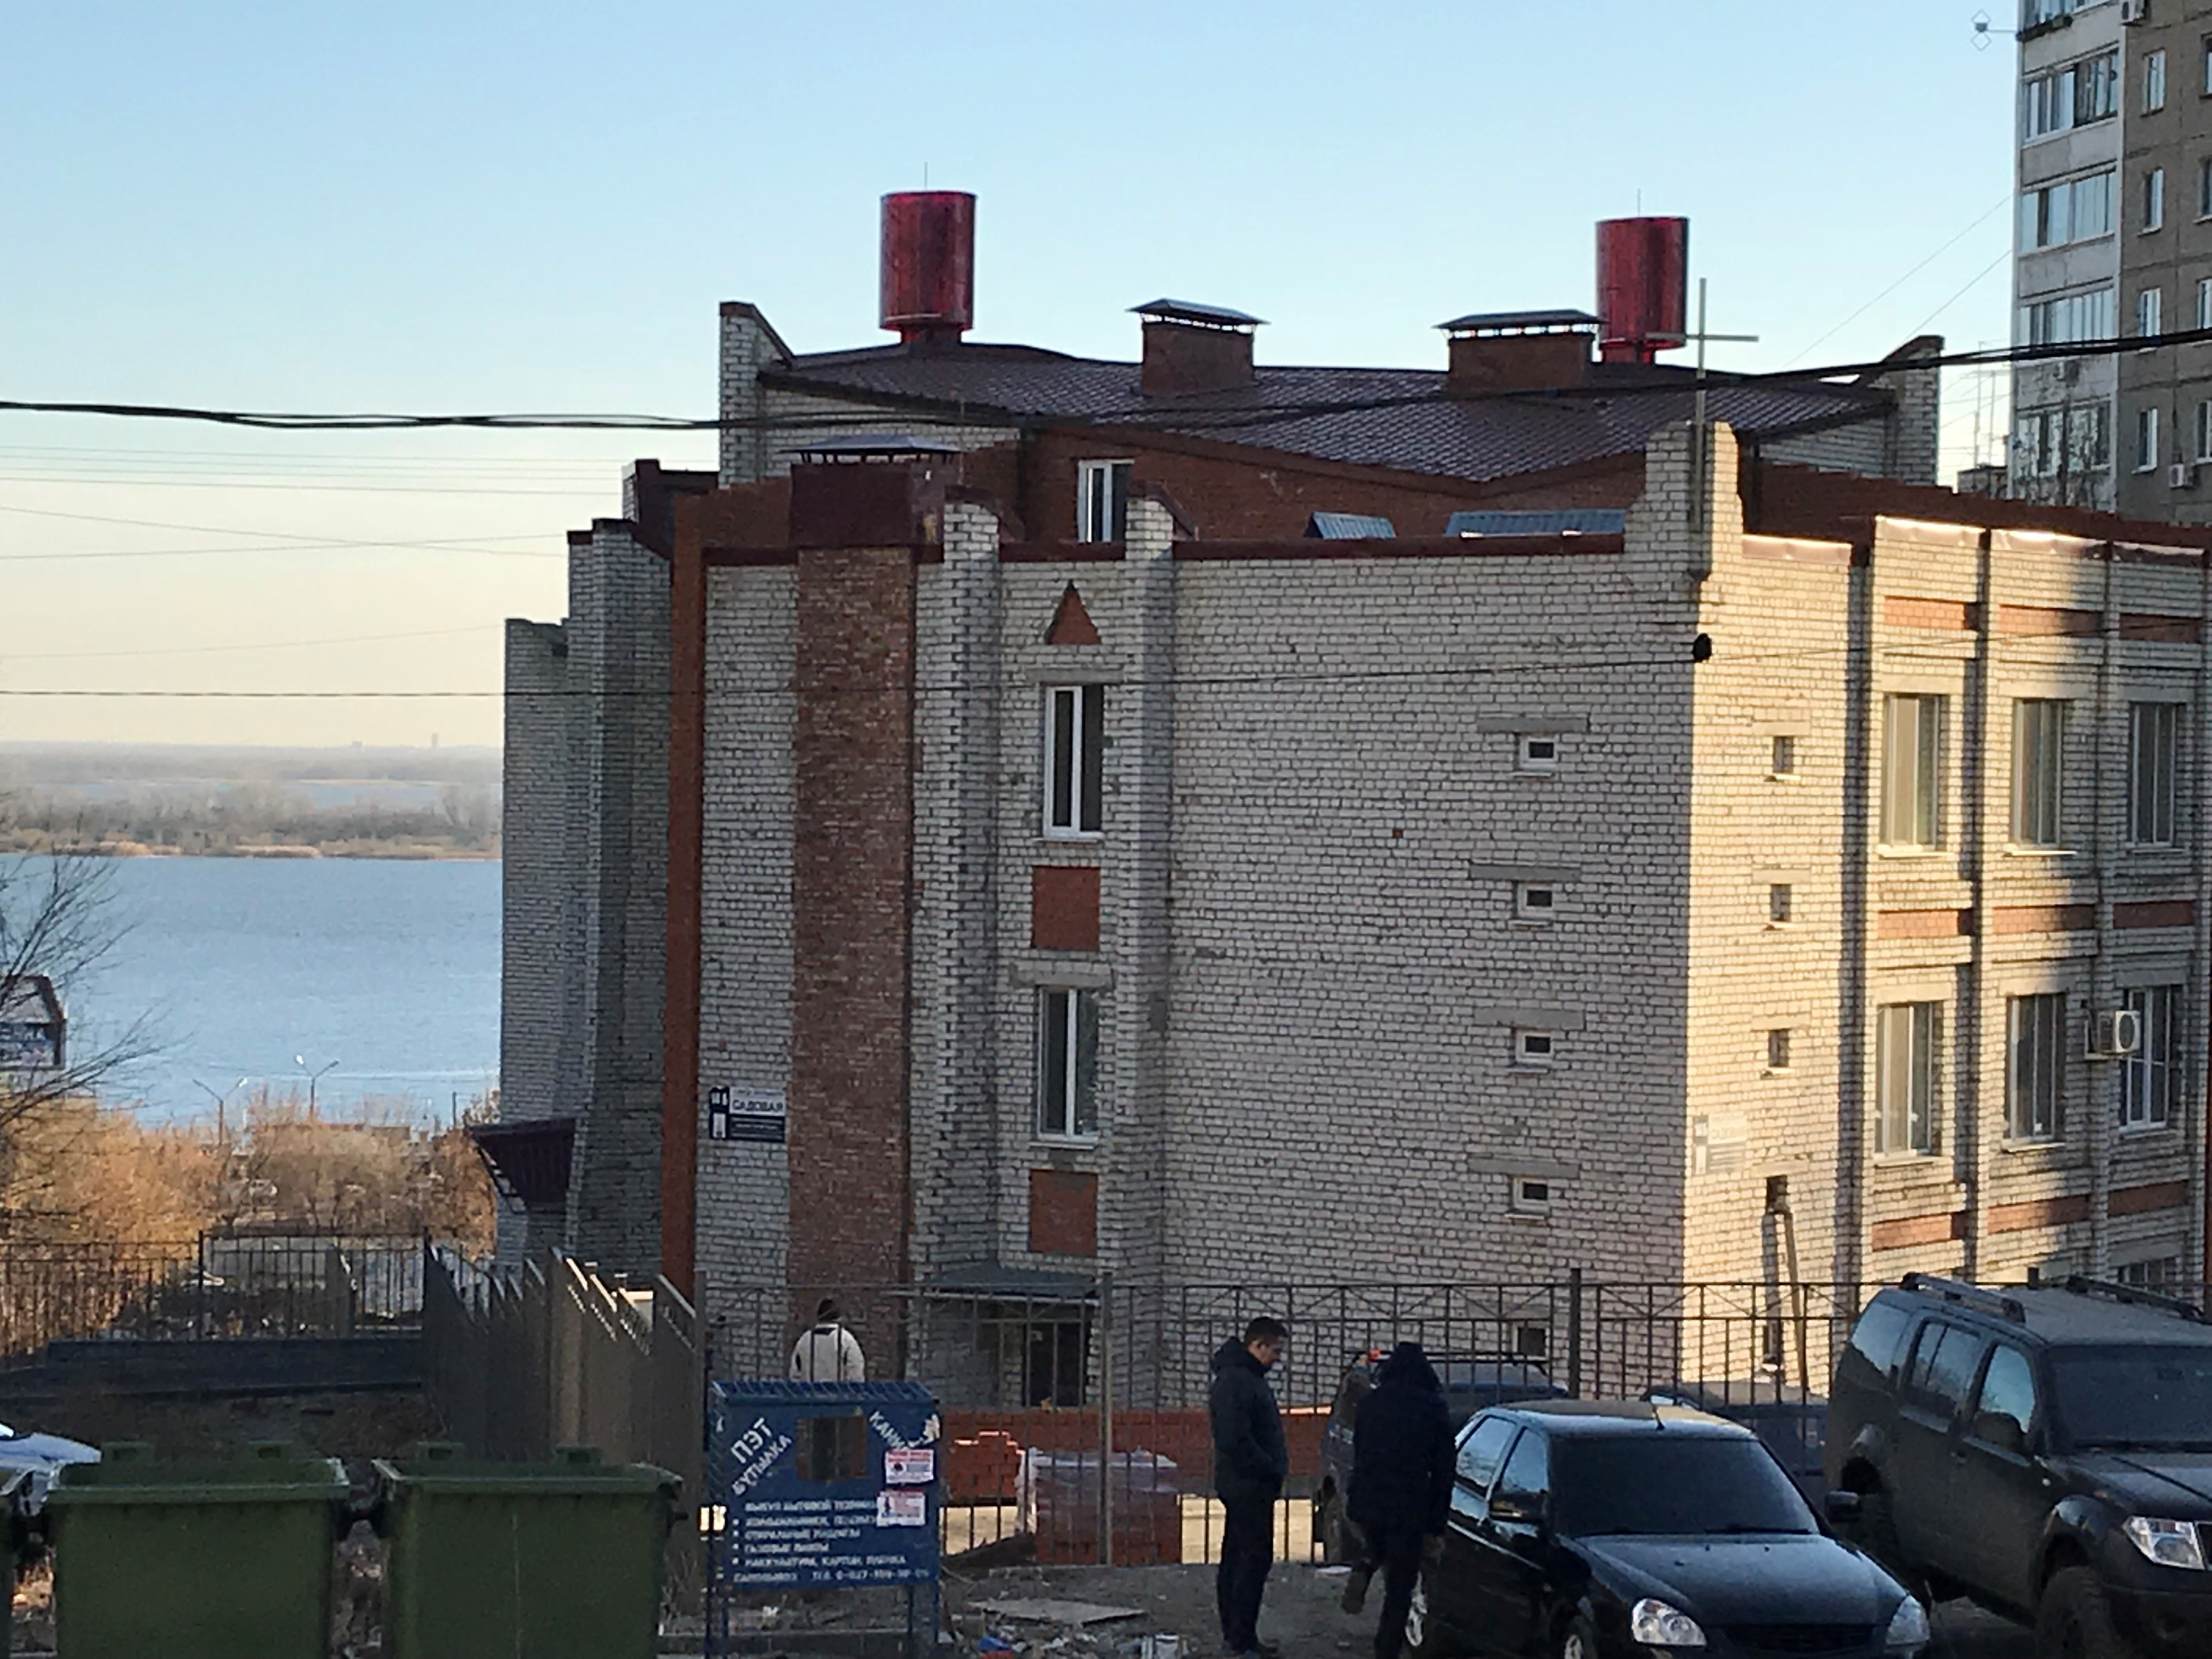 The unfinished exterior of the sanctuary, with the Volga River in the background.